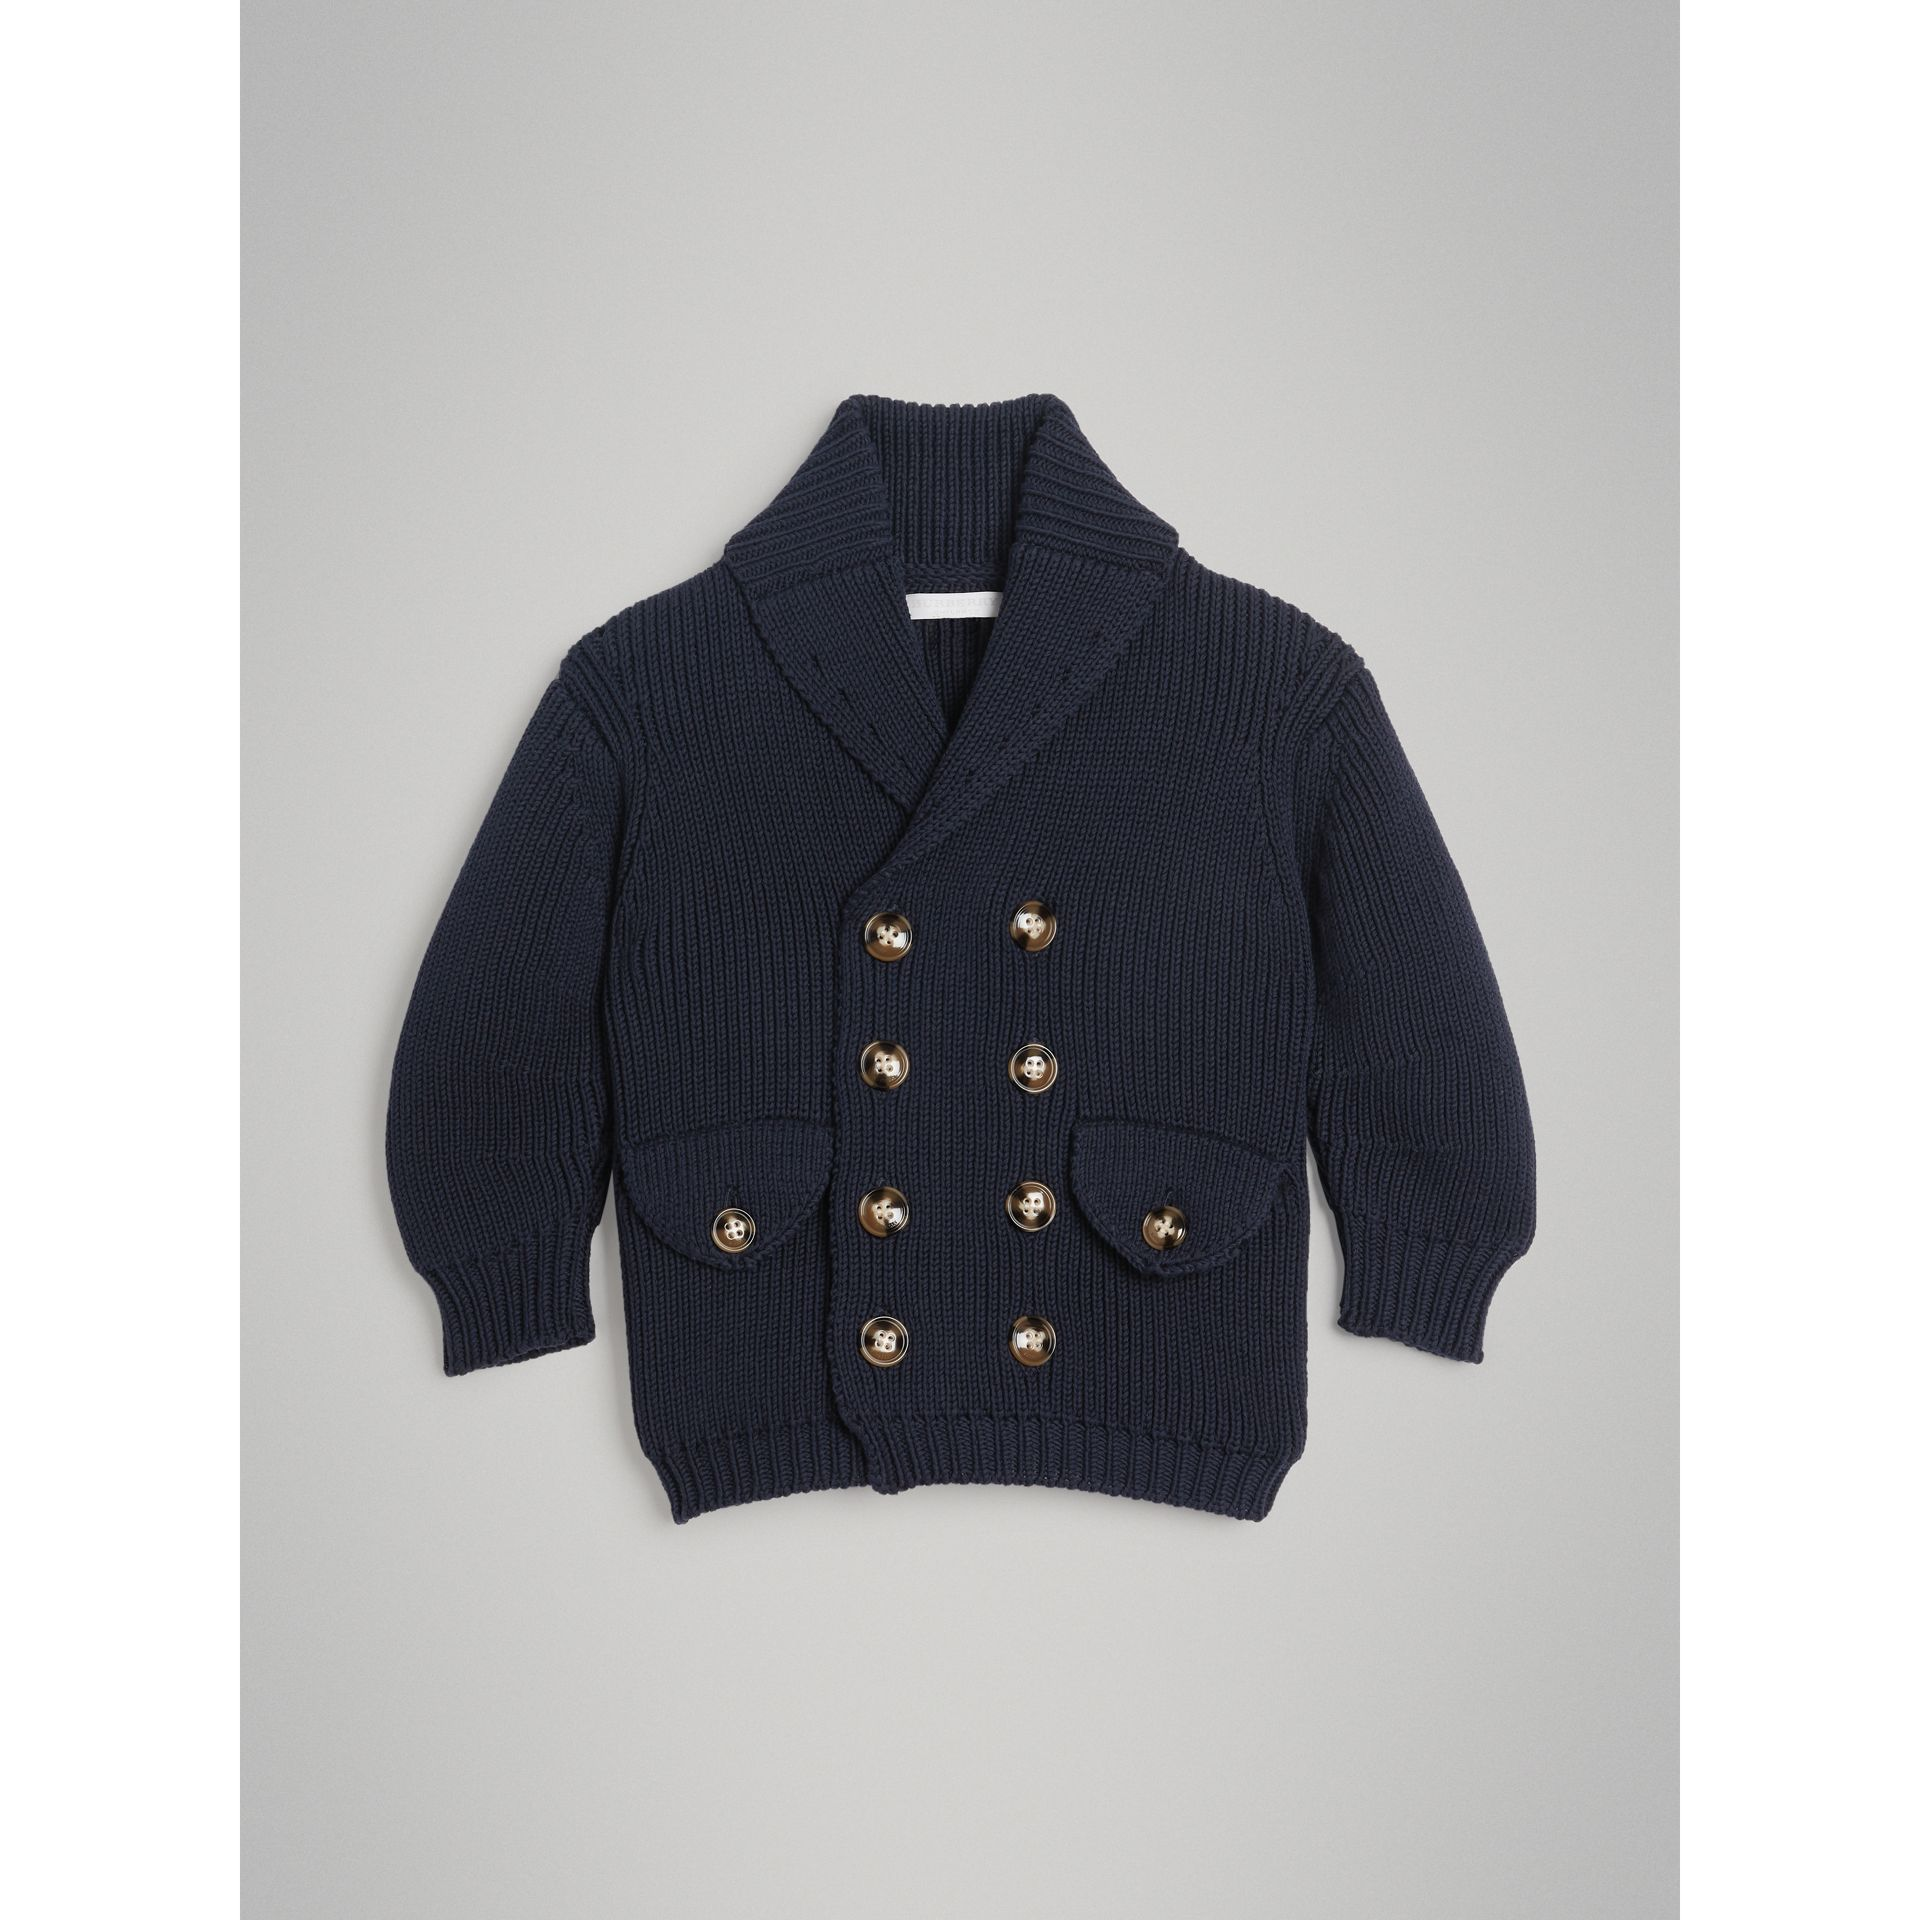 Cotton Knit Pea Coat Cardigan in Navy - Boy | Burberry - gallery image 0